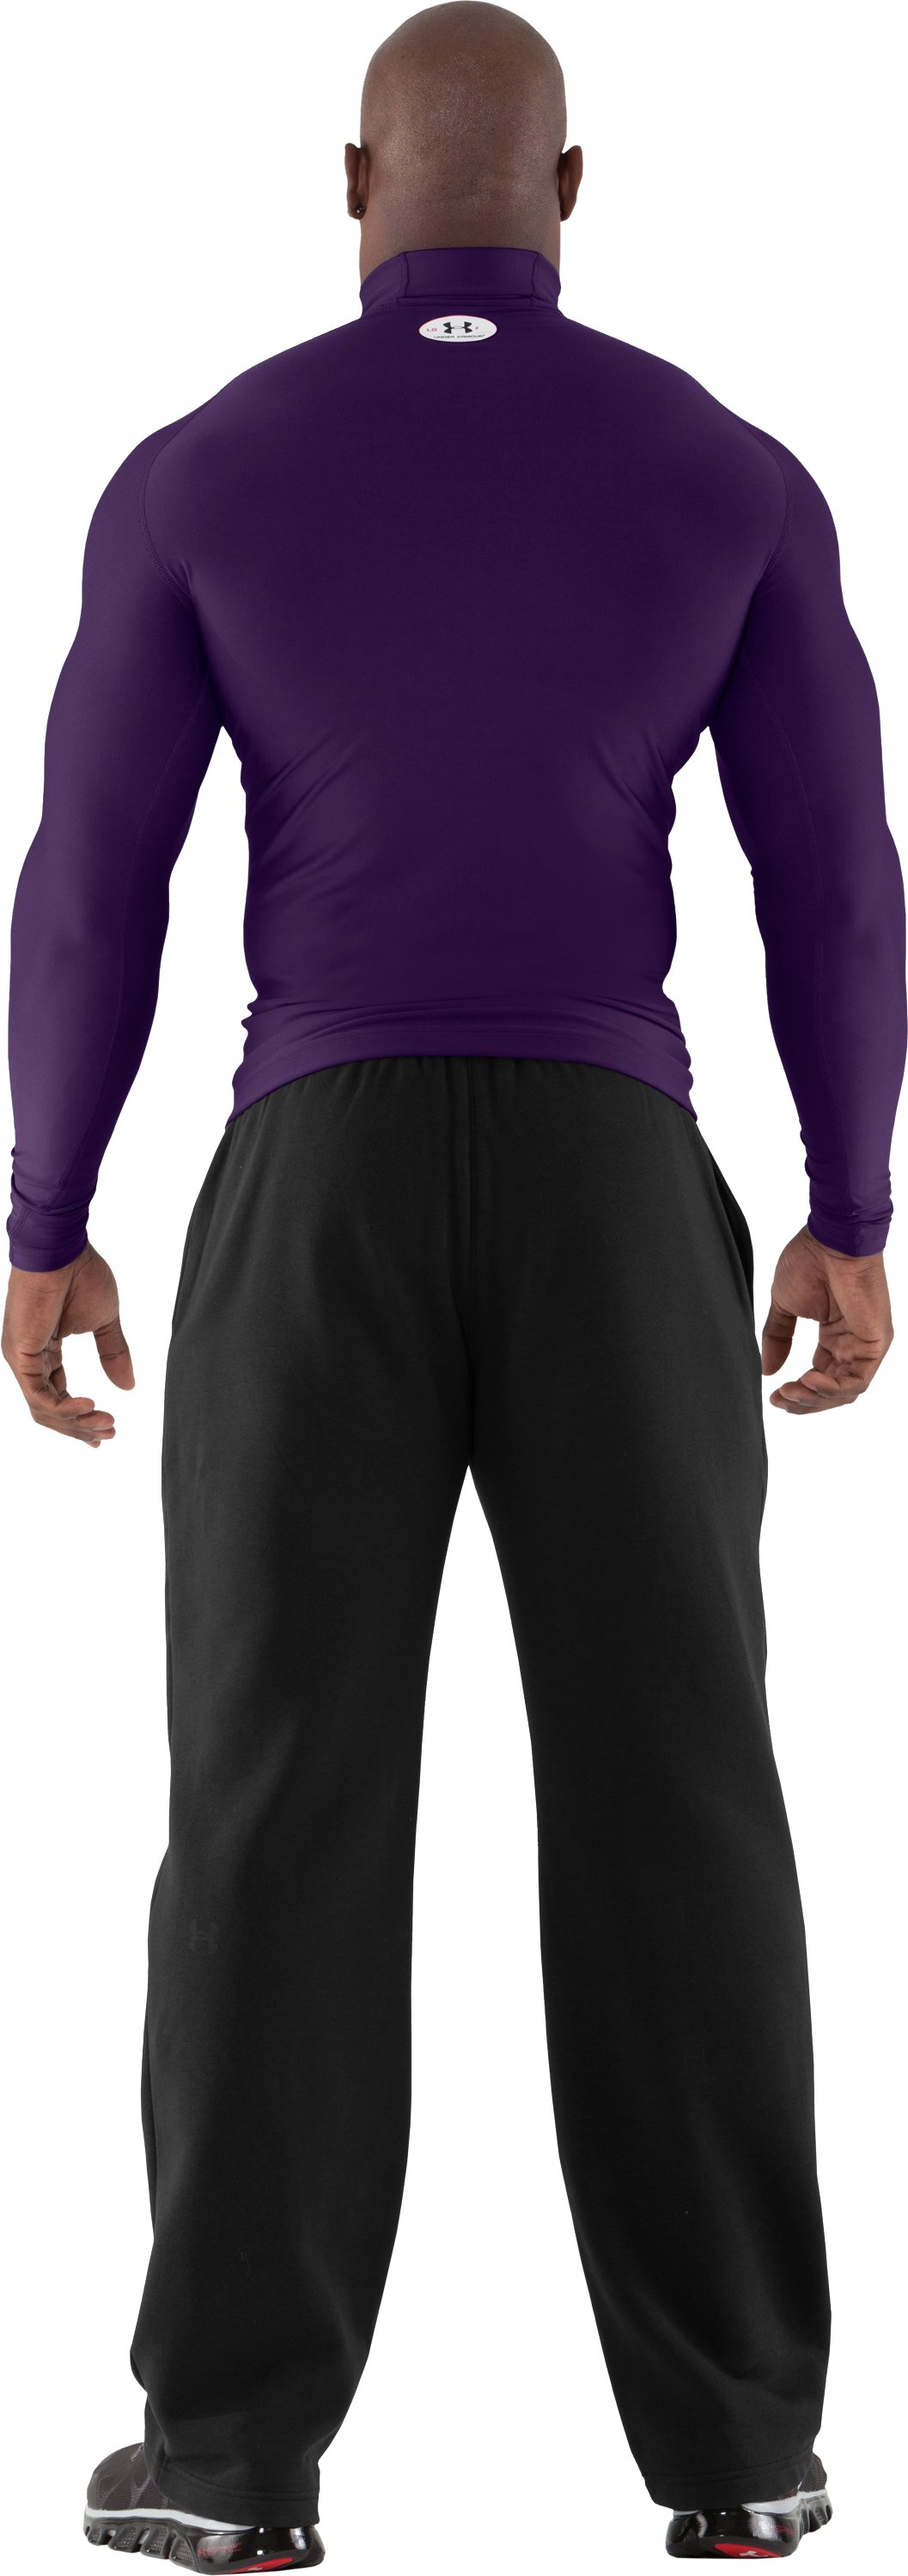 Men's ColdGear® Evo Long Sleeve Compression Mock, Purple, Back